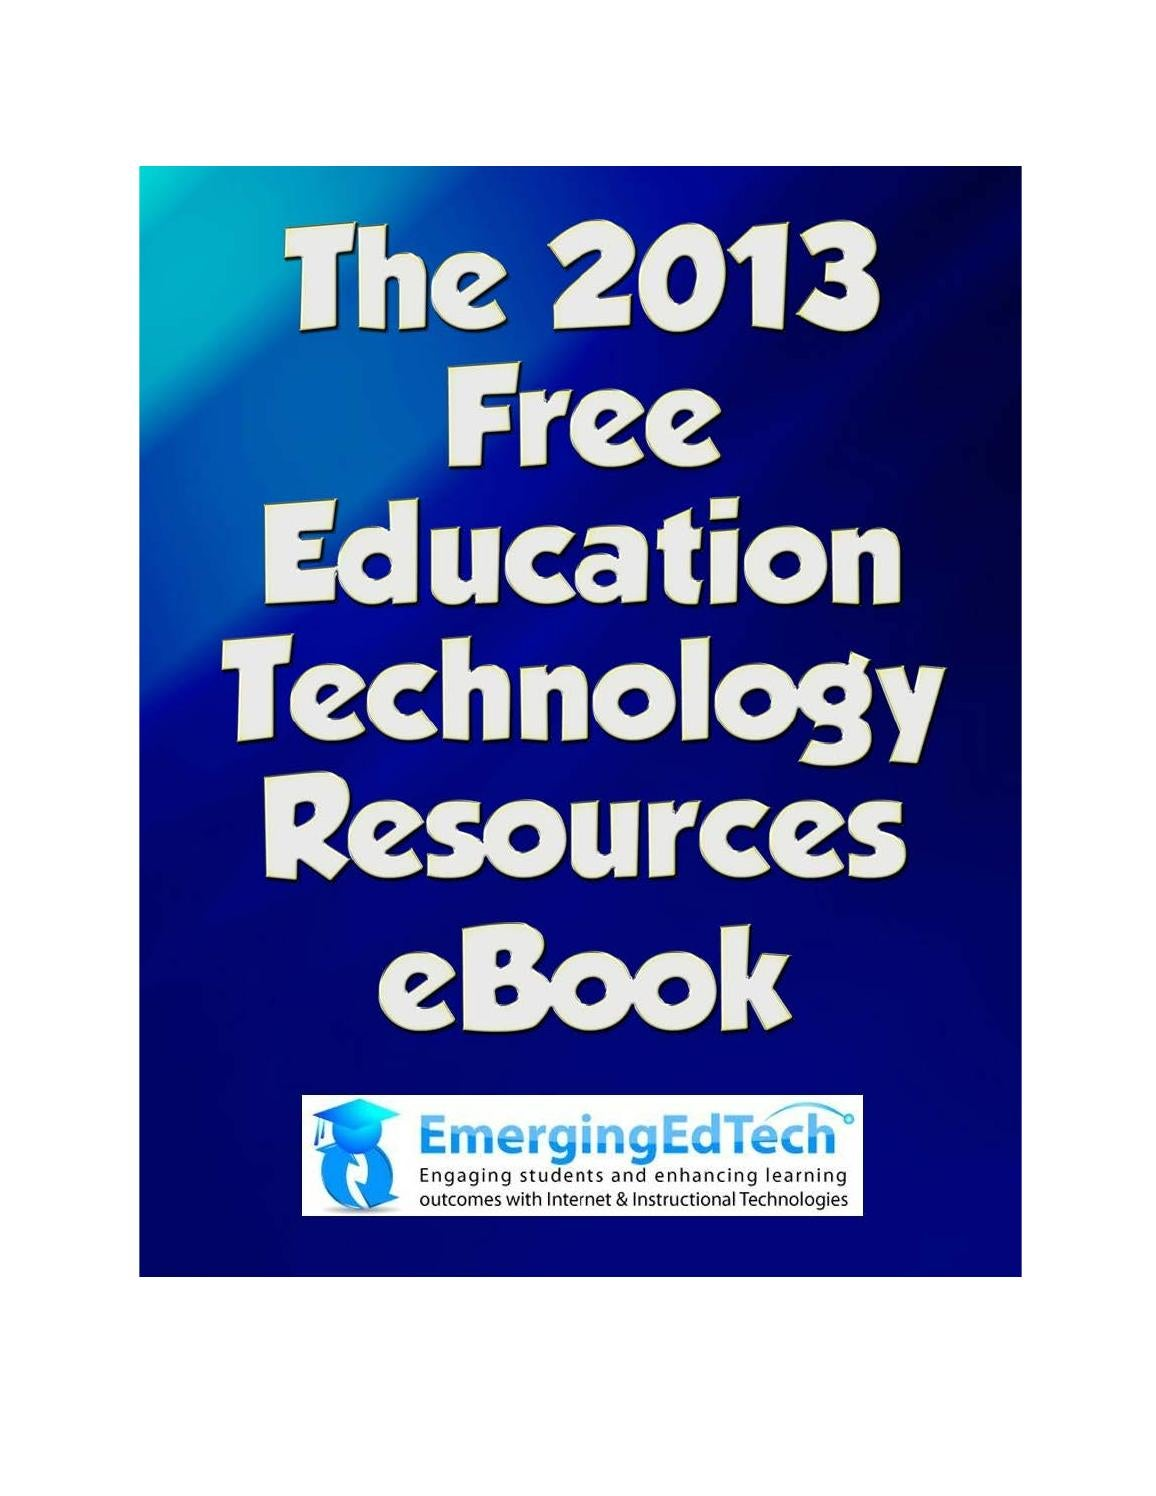 Emergingedtech's 2013 free education technology resources